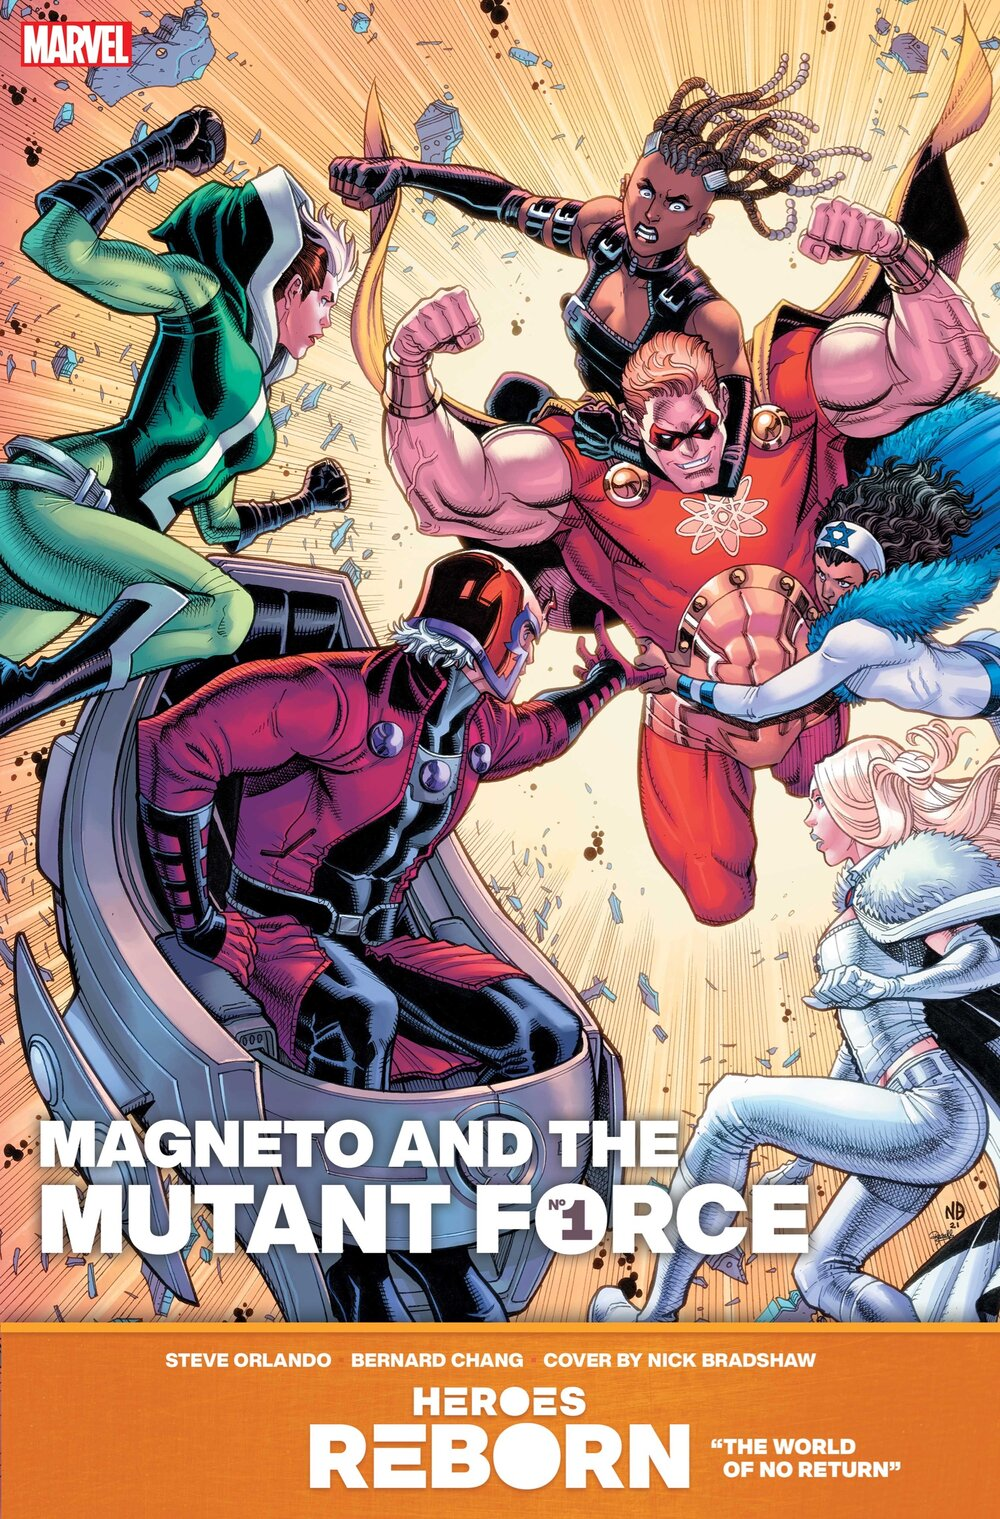 HEROES REBORN: MAGNETO & THE MUTANT FORCE #1  Written by STEVE ORLANDO  Art by BERNARD CHANG  Cover by NICK BRADSHAW  On Sale 5/19/21